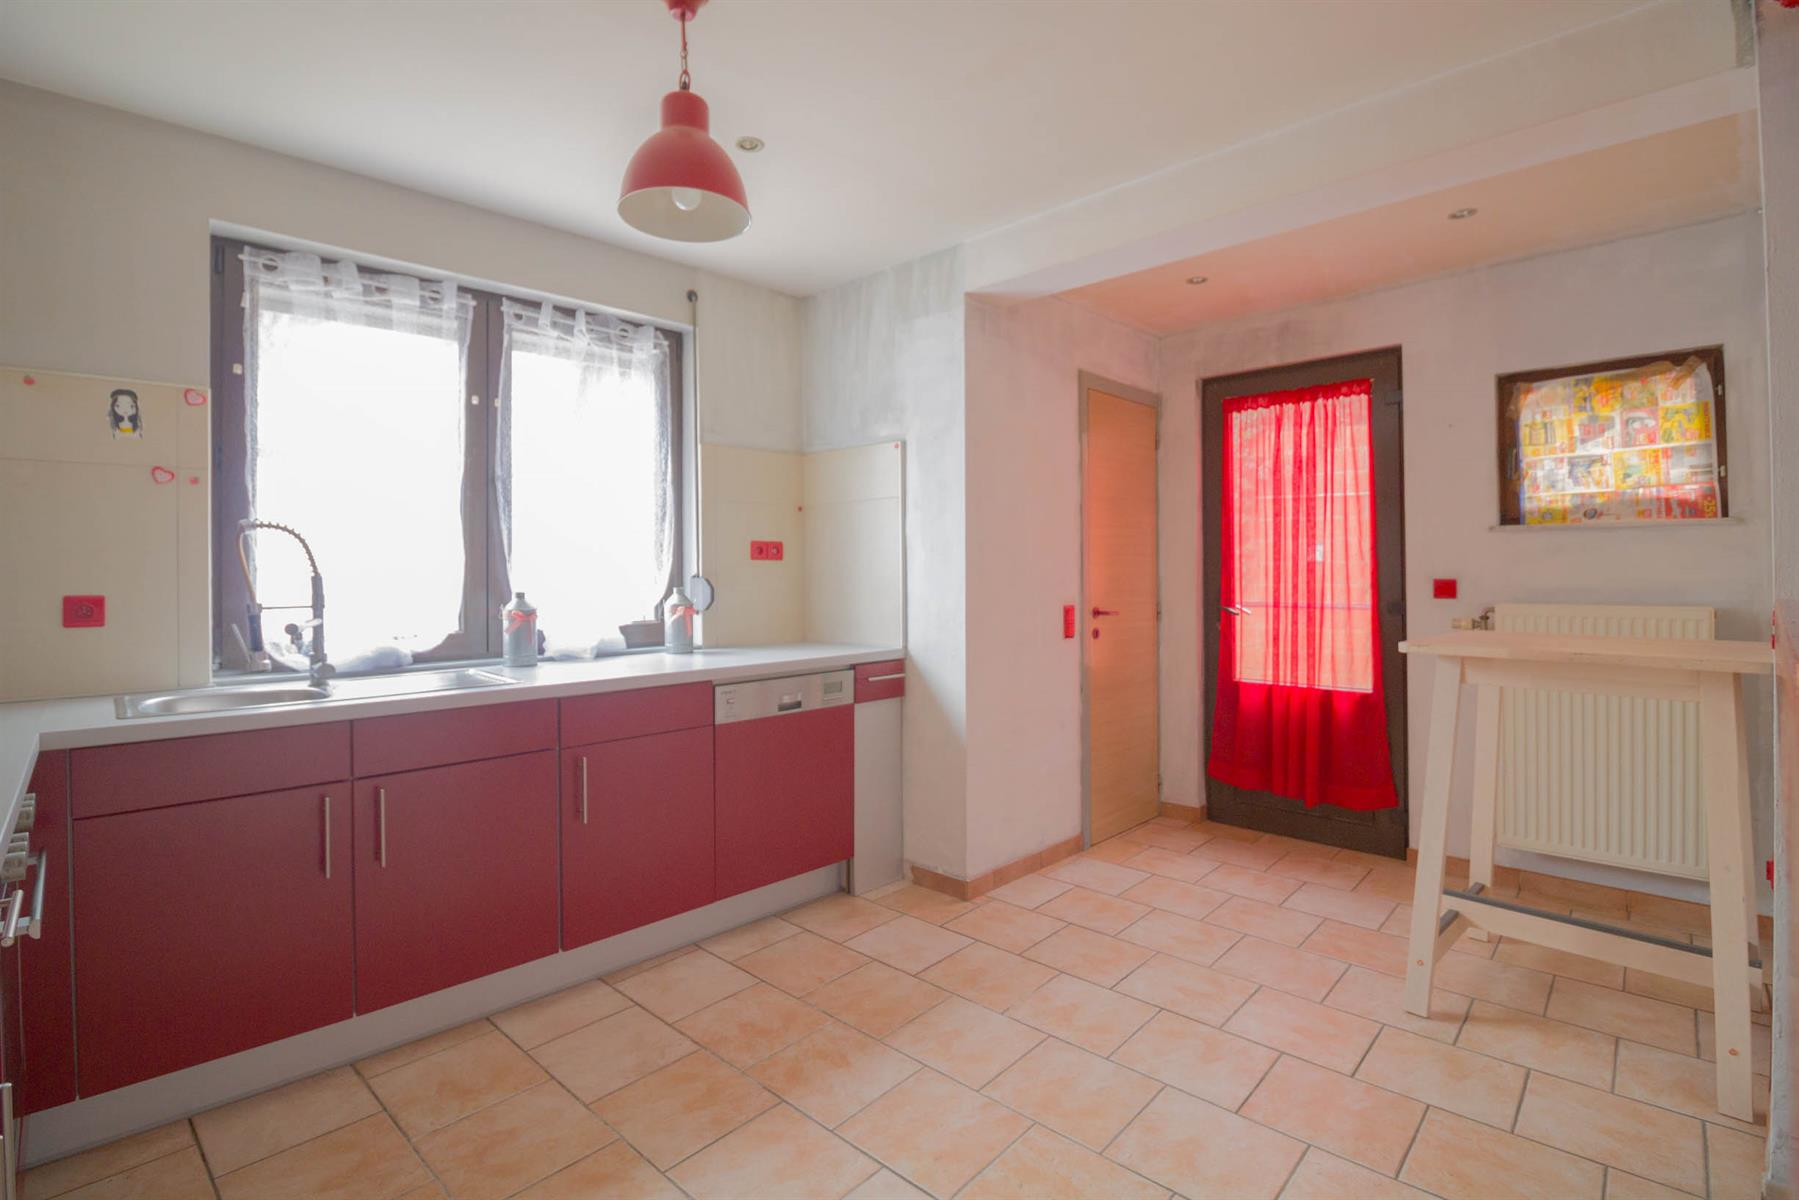 Maison - Courcelles (Trazegnies) - #4445047-7